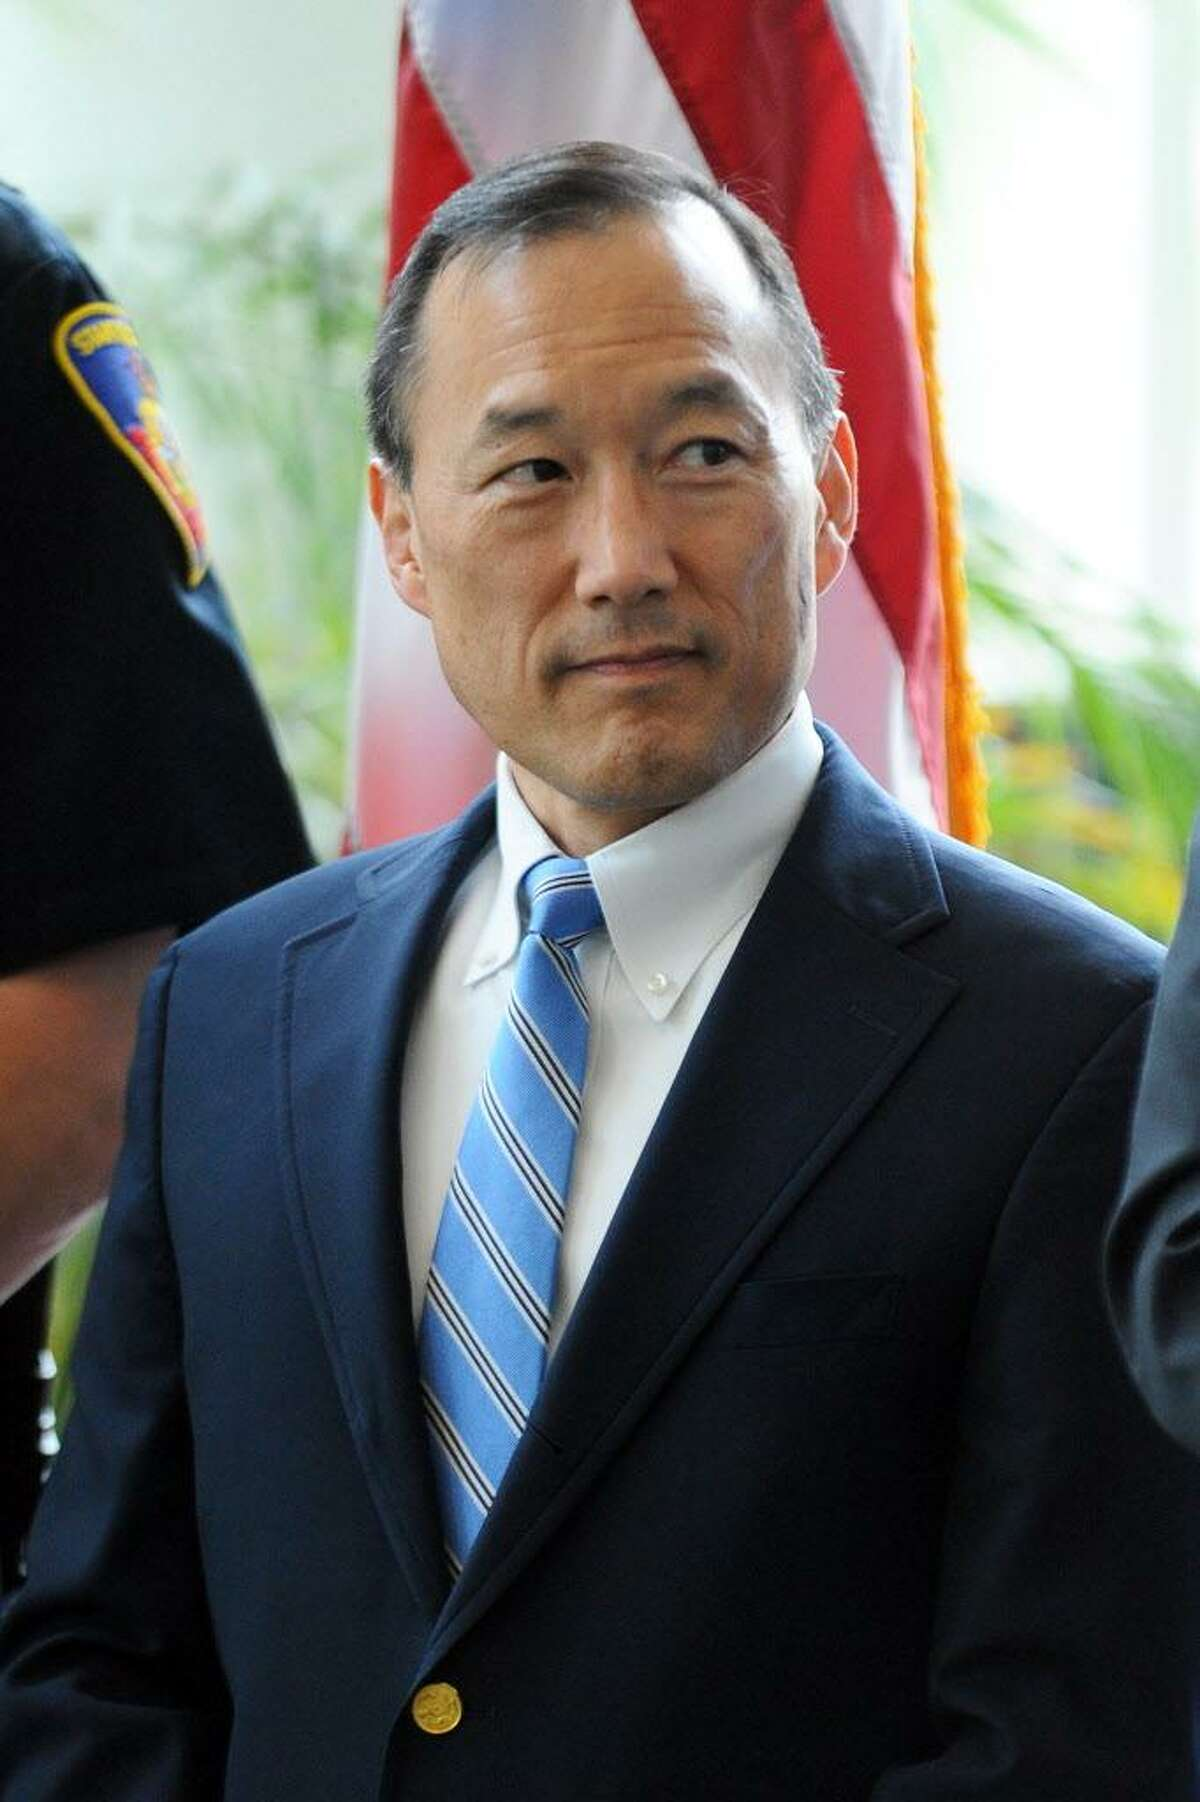 Stamford Superintendent of Schools Earl Kim during a ceremony inside Government Center in Stamford, Conn. on Tuesday, May 16, 2017.